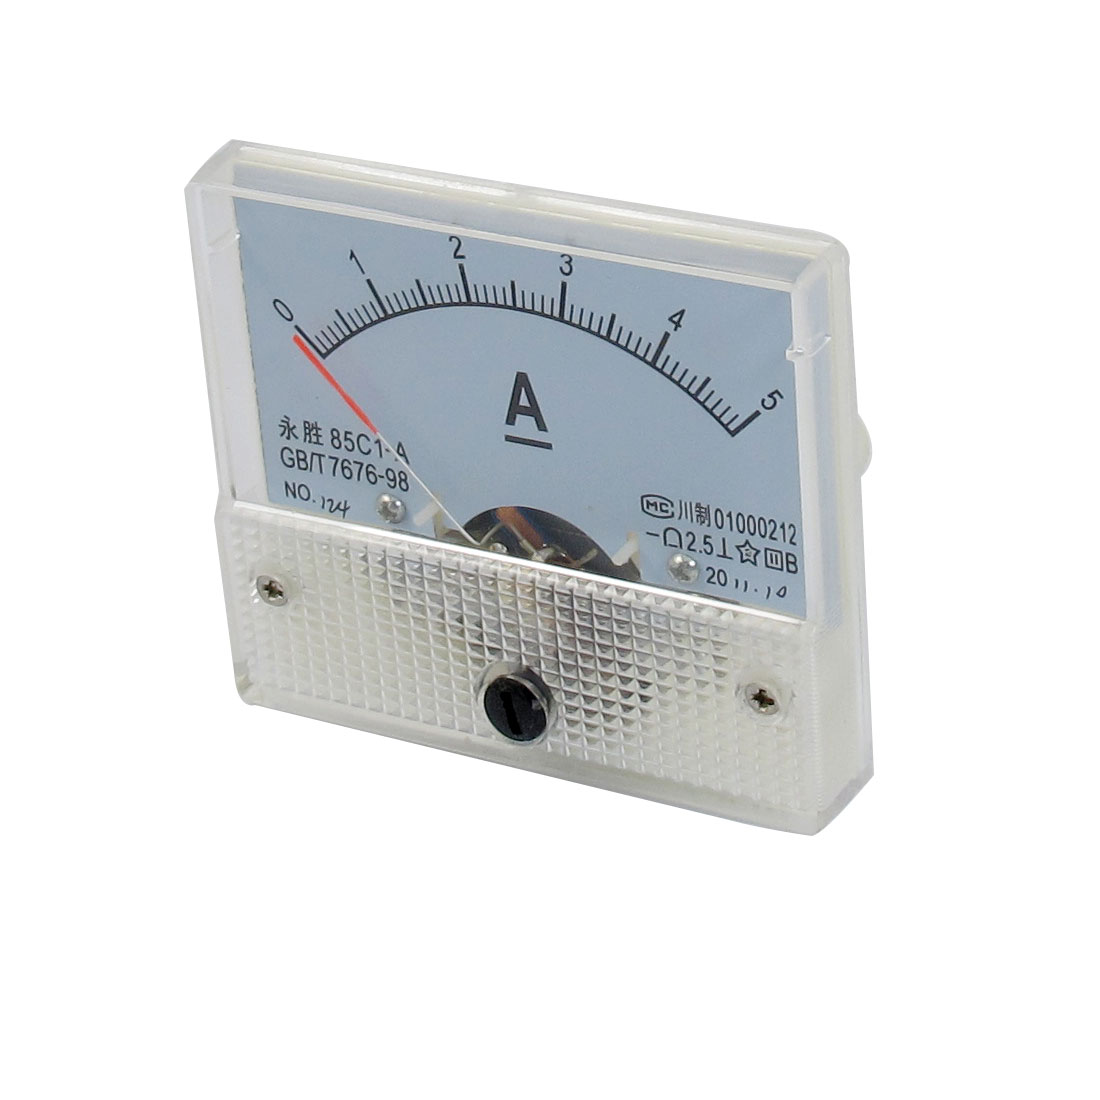 0-5A Scale Range DC Current Test Amperemeter Panel Meter w Screw Nuts